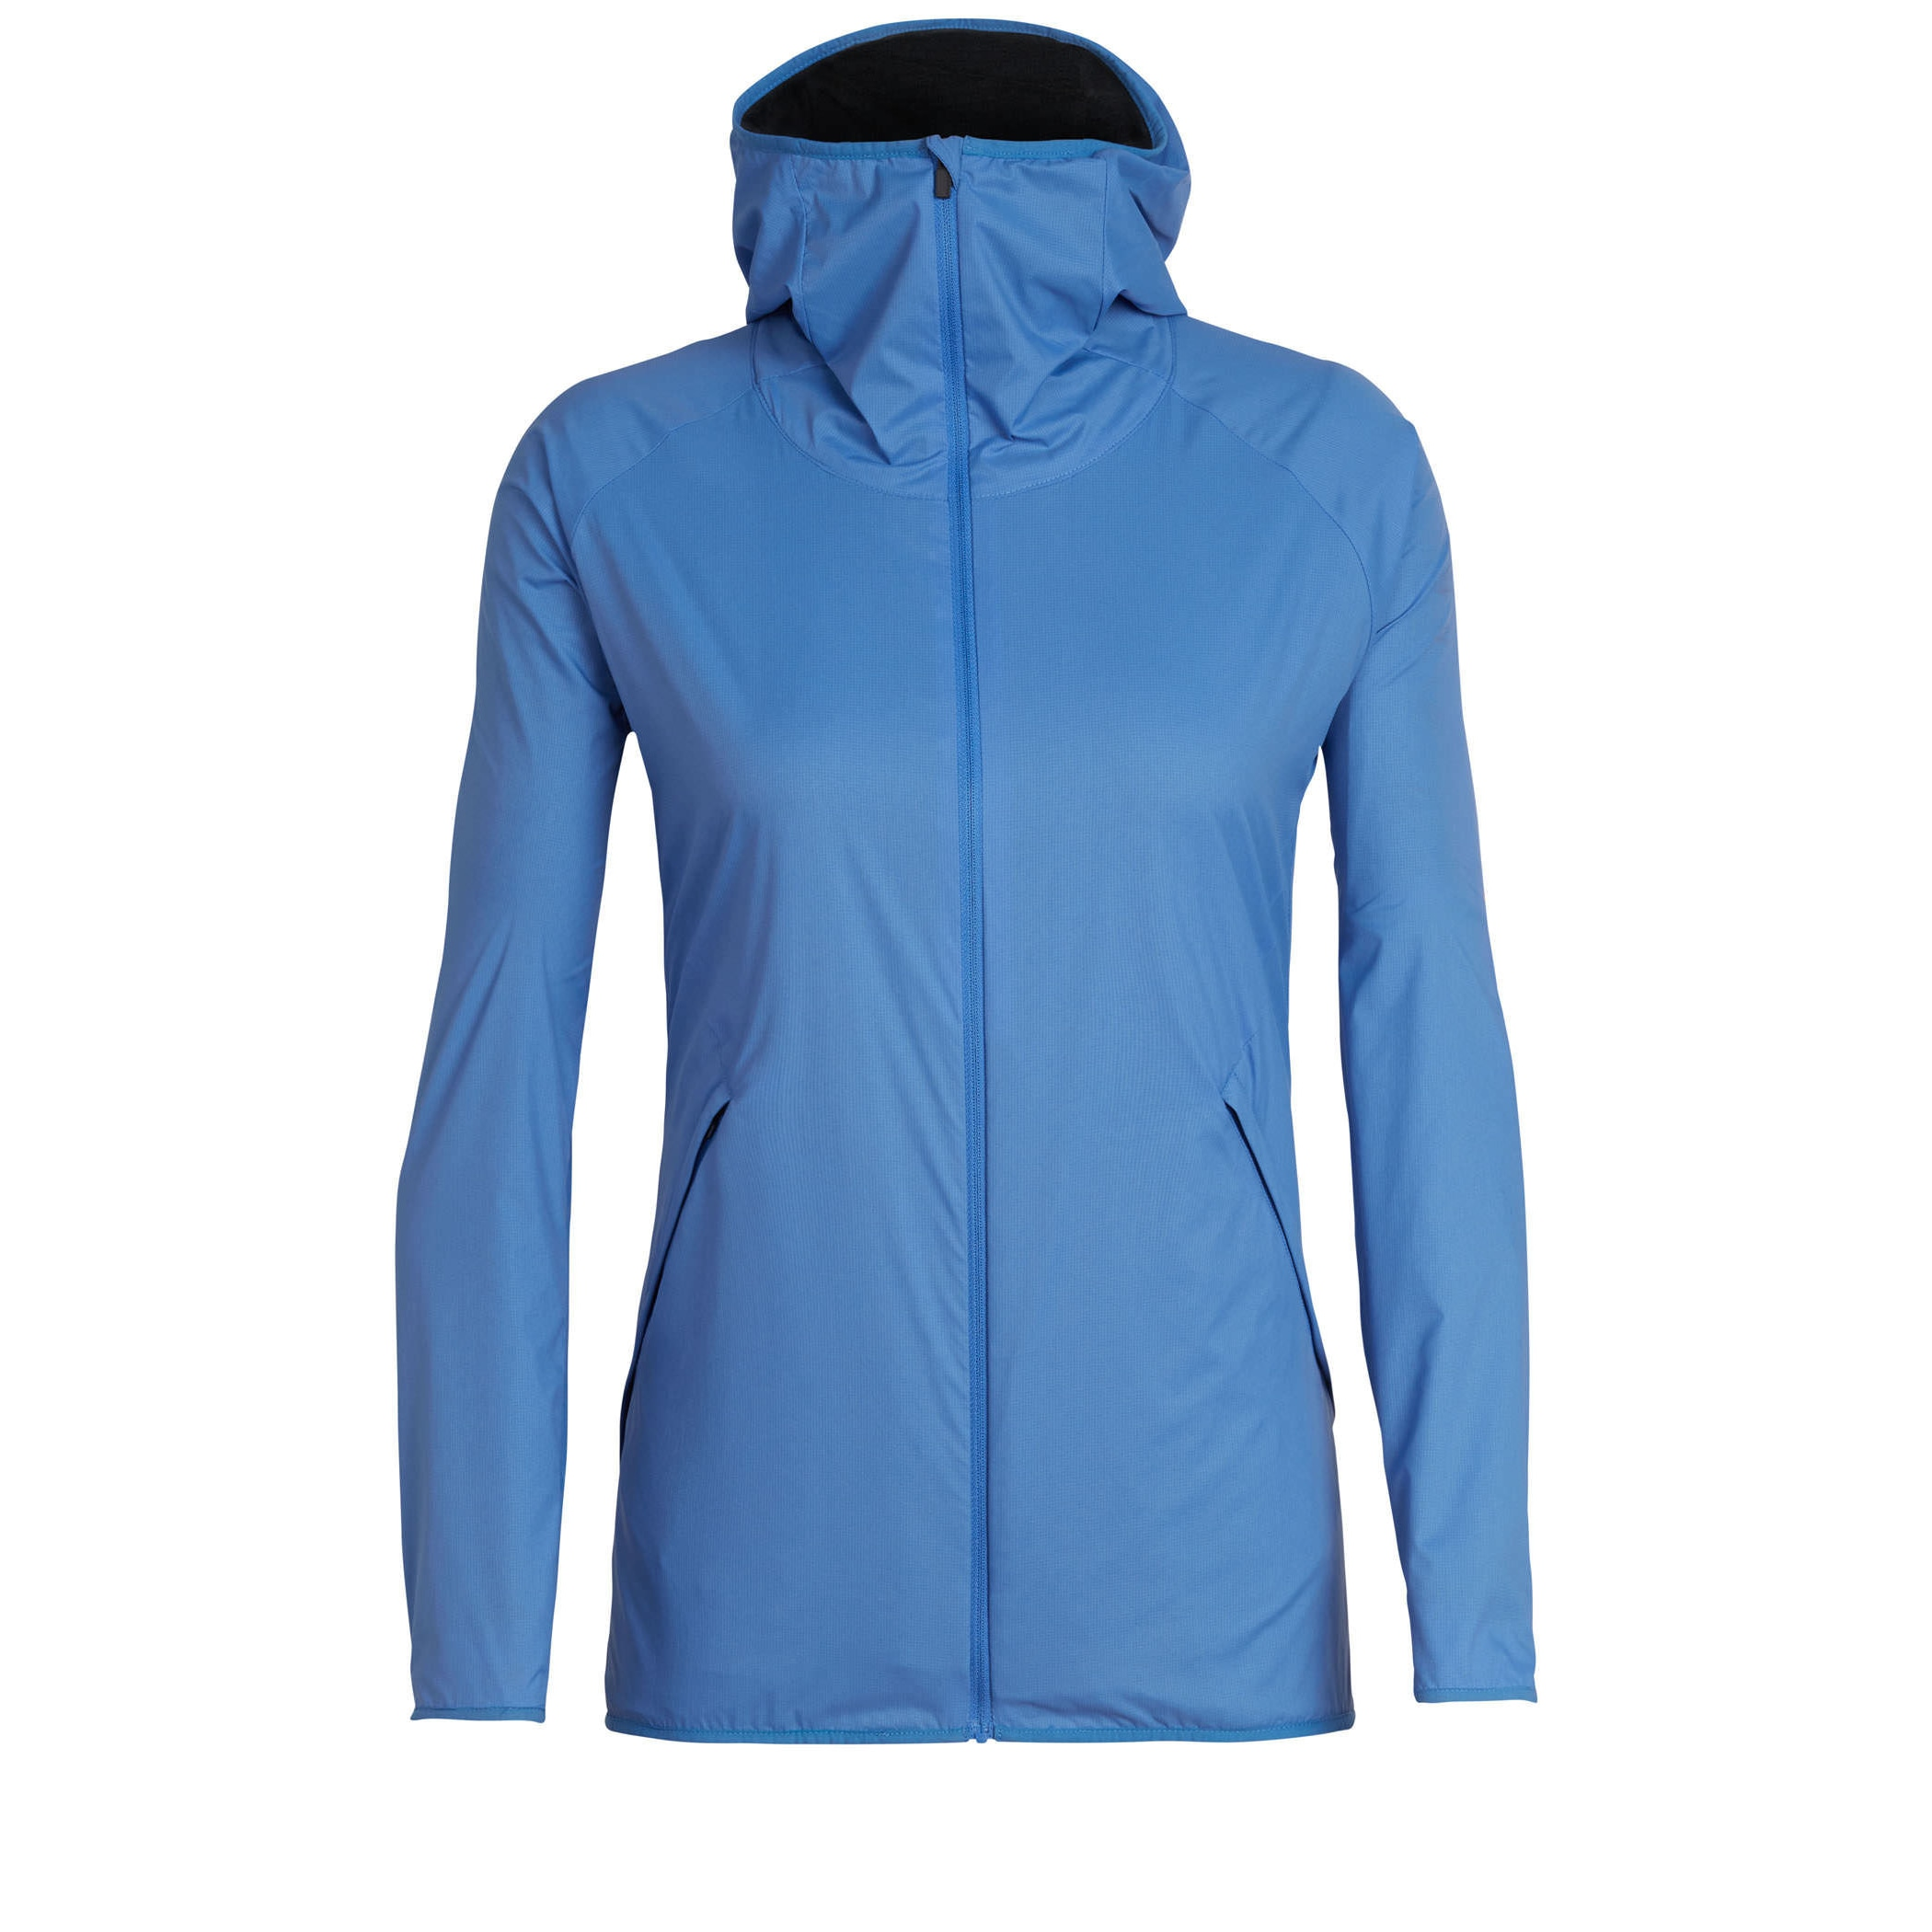 Coriolis II Hooded Windbreaker - Women's